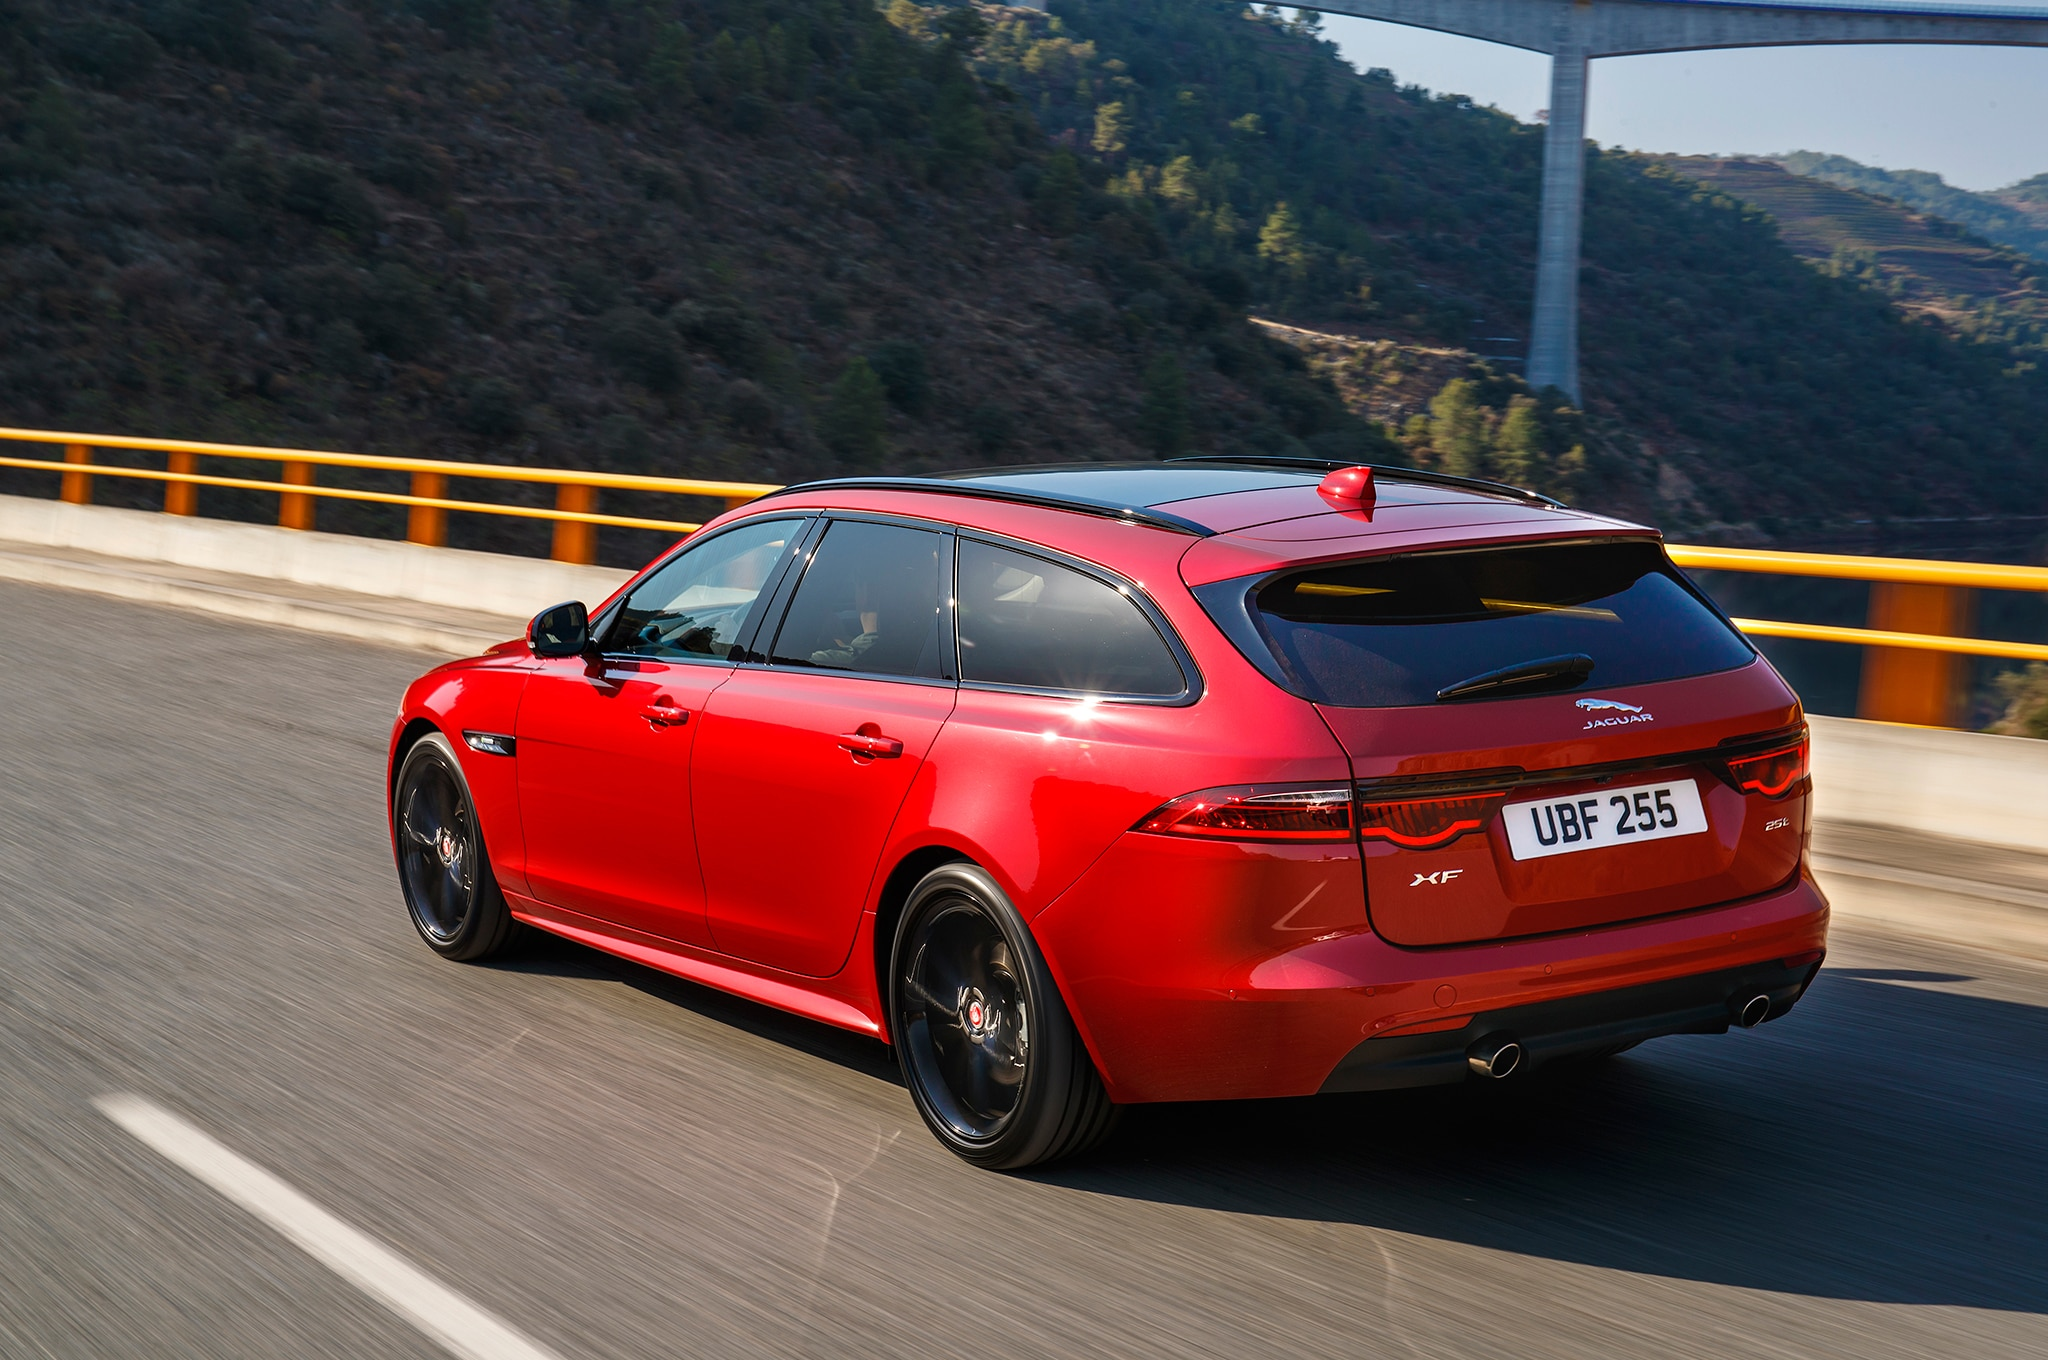 Jaguar XF Sportbrake is Expected to Be Axed